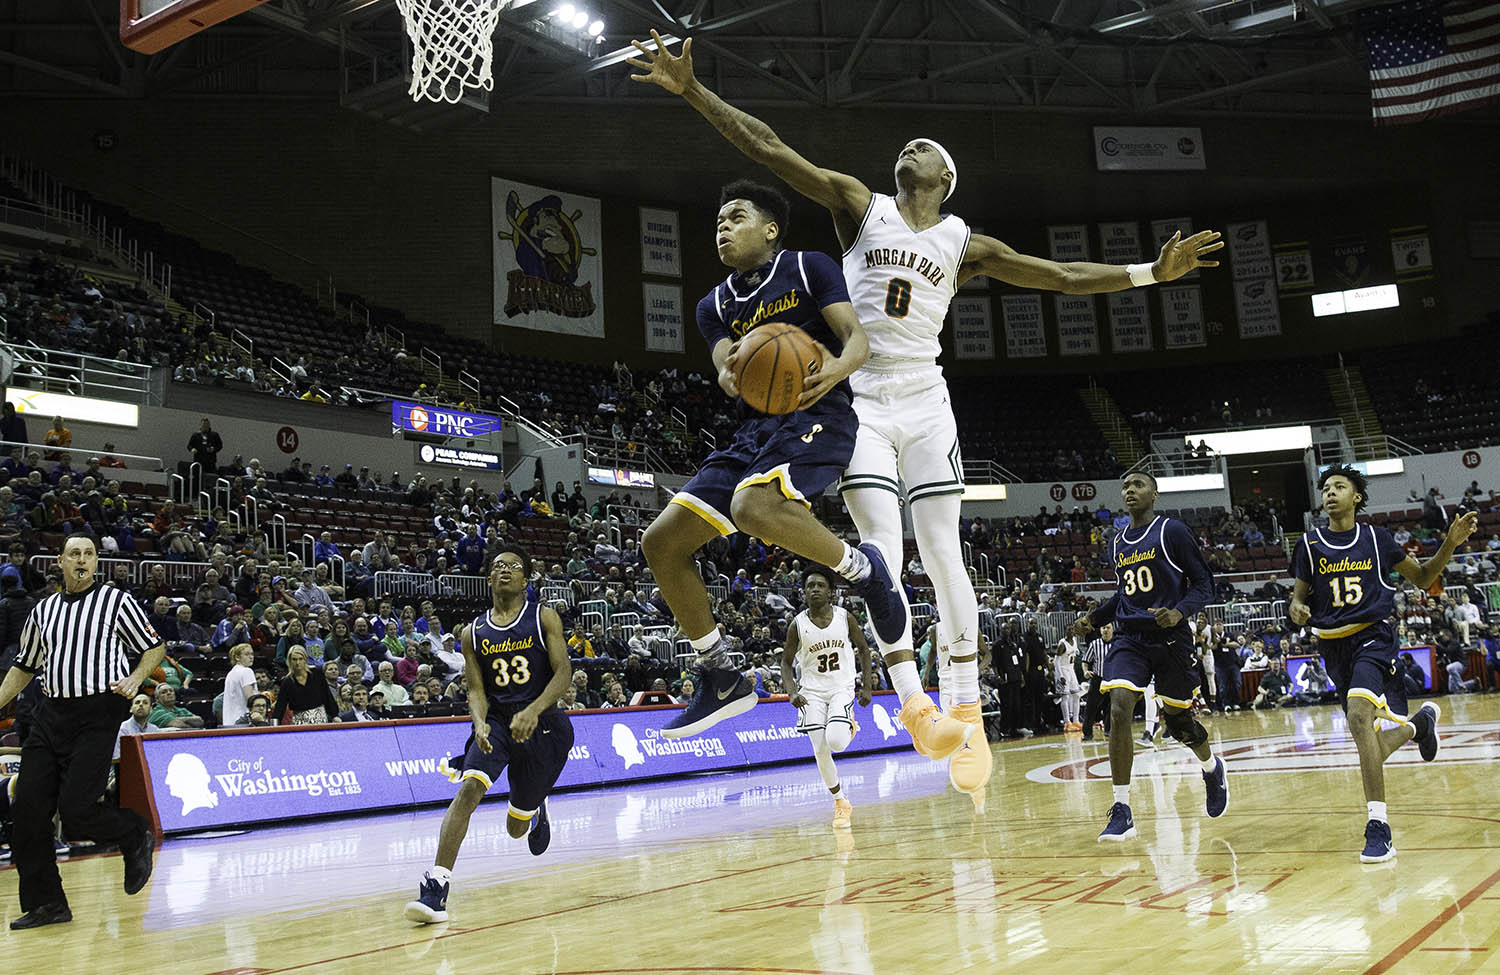 Southeast's Damon Davis drives to the hoop in front of Morgan Park's Kyel Grover during the 3A championship game at Carver Arena in Peoria, Ill., Saturday, March 17, 2018. [Ted Schurter/The State Journal-Register]